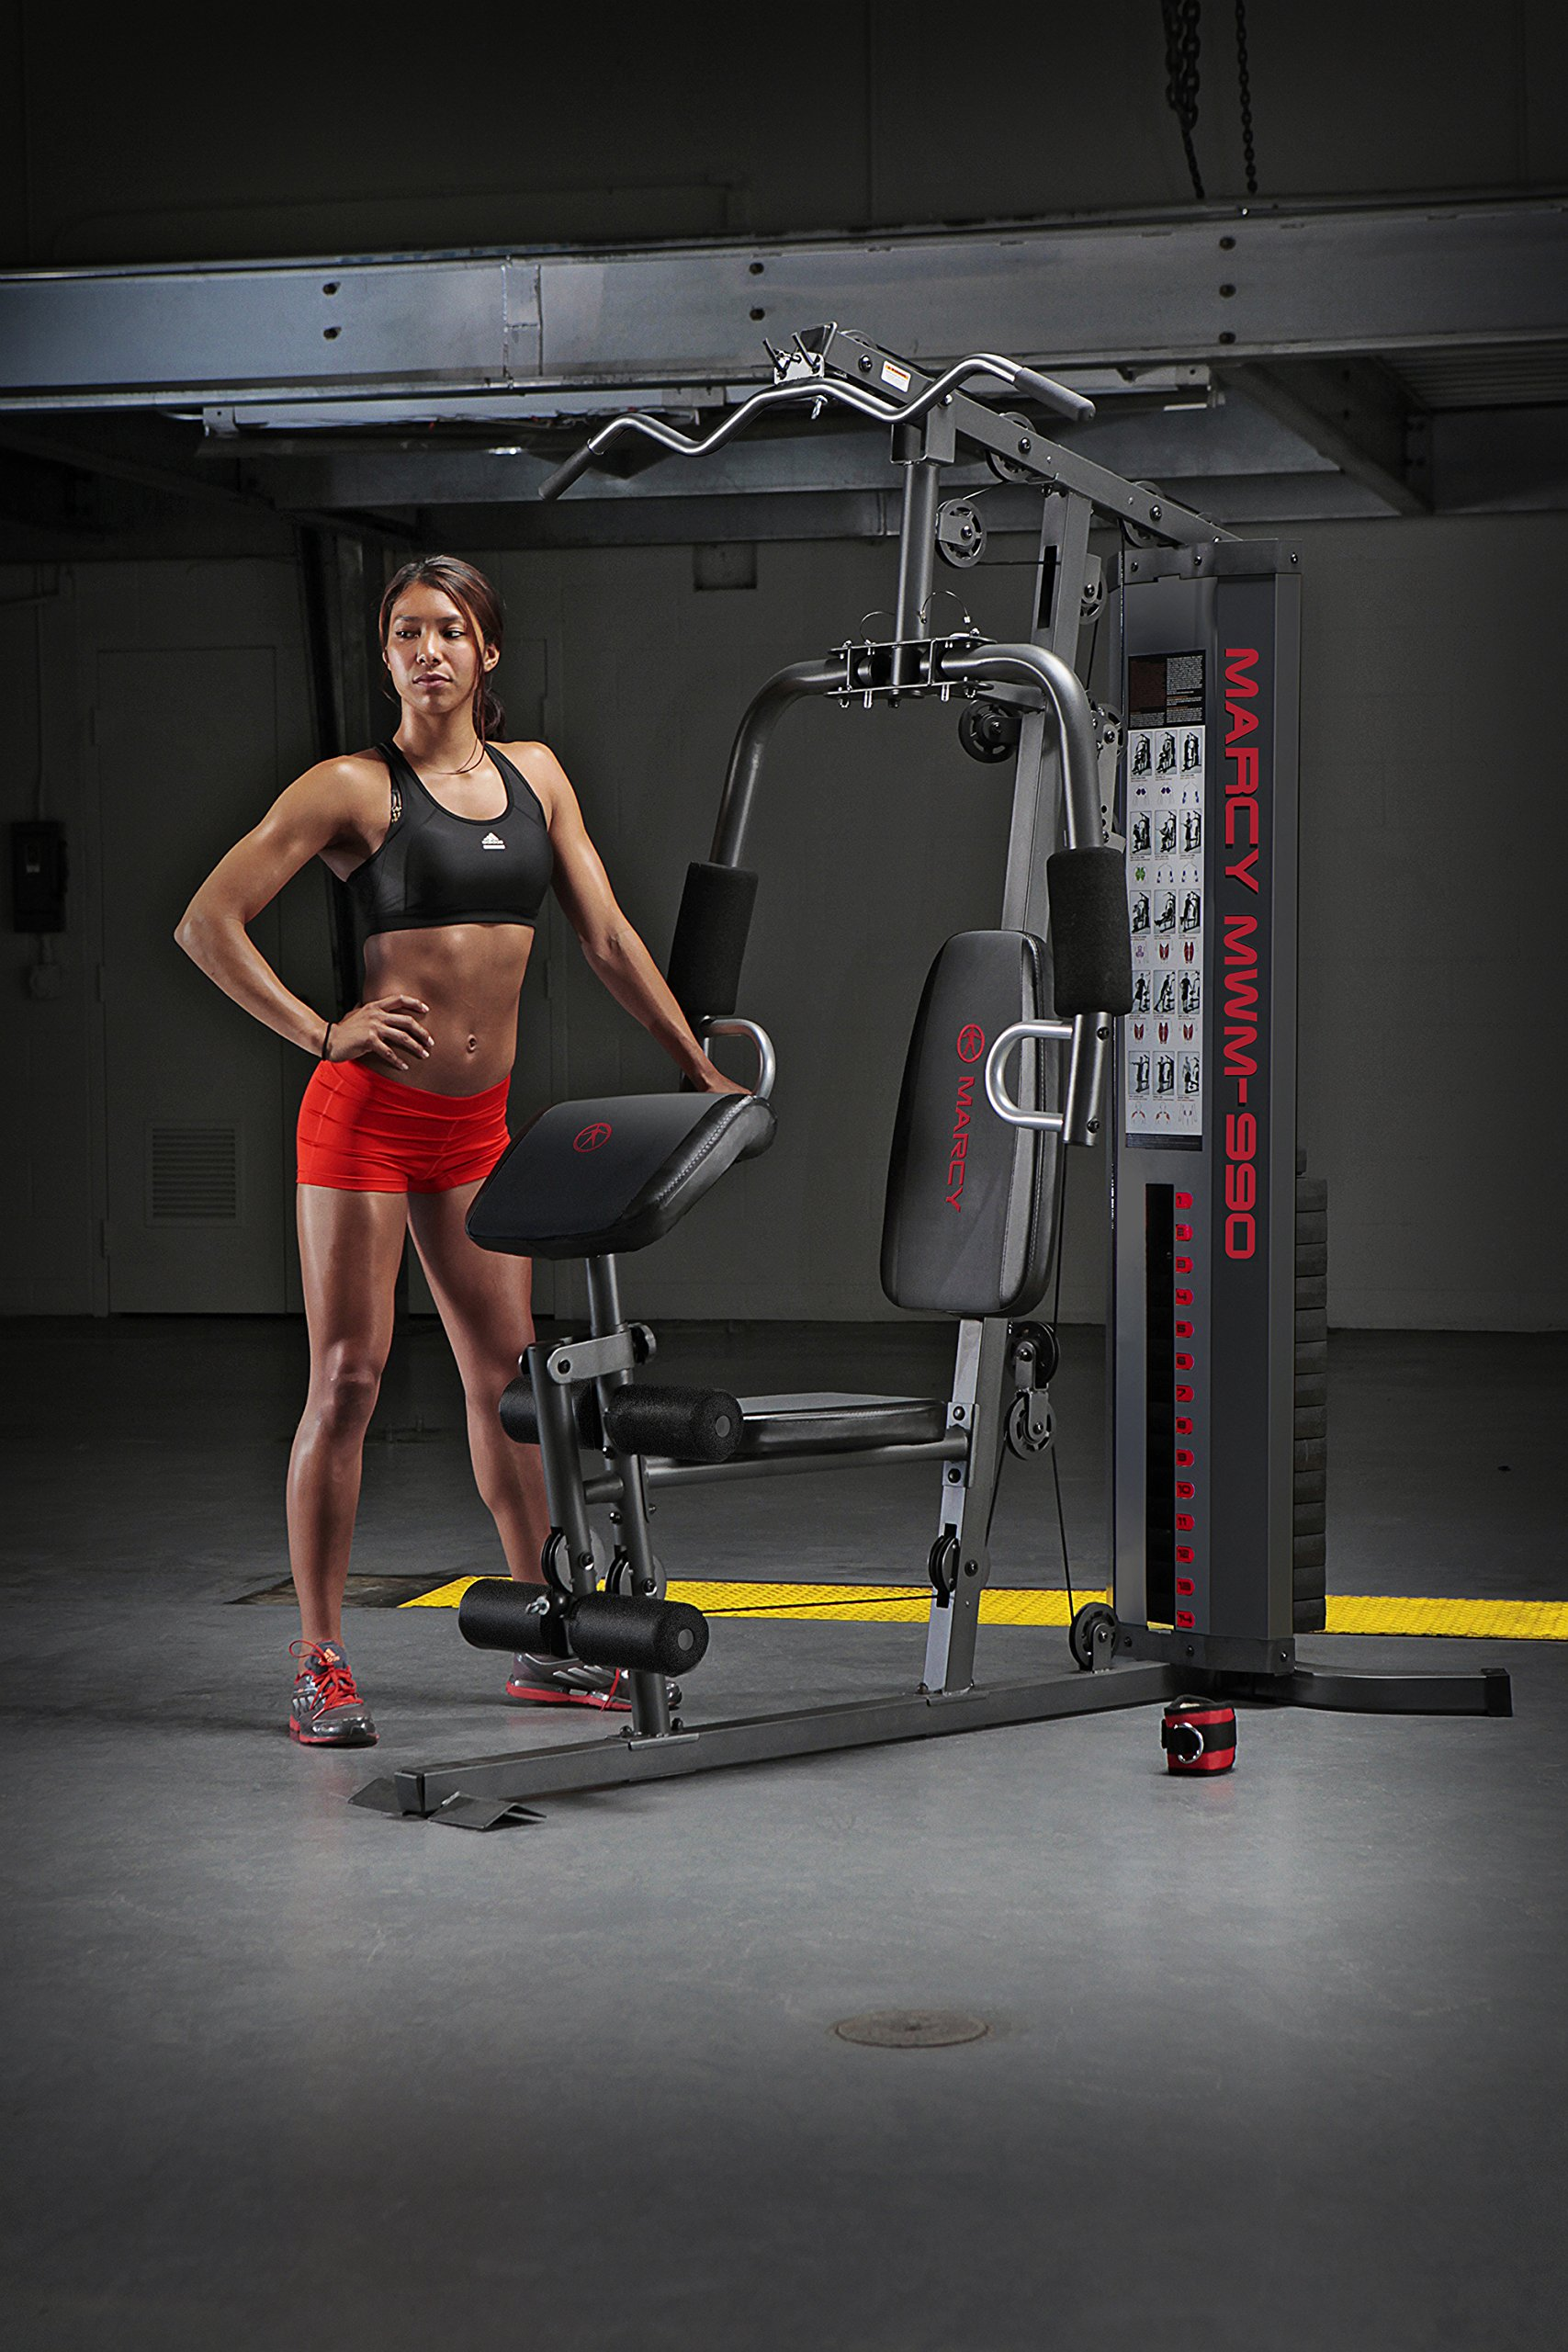 Marcy 150-lb Multifunctional Home Gym Station for Total Body Training MWM-990 by Marcy (Image #6)